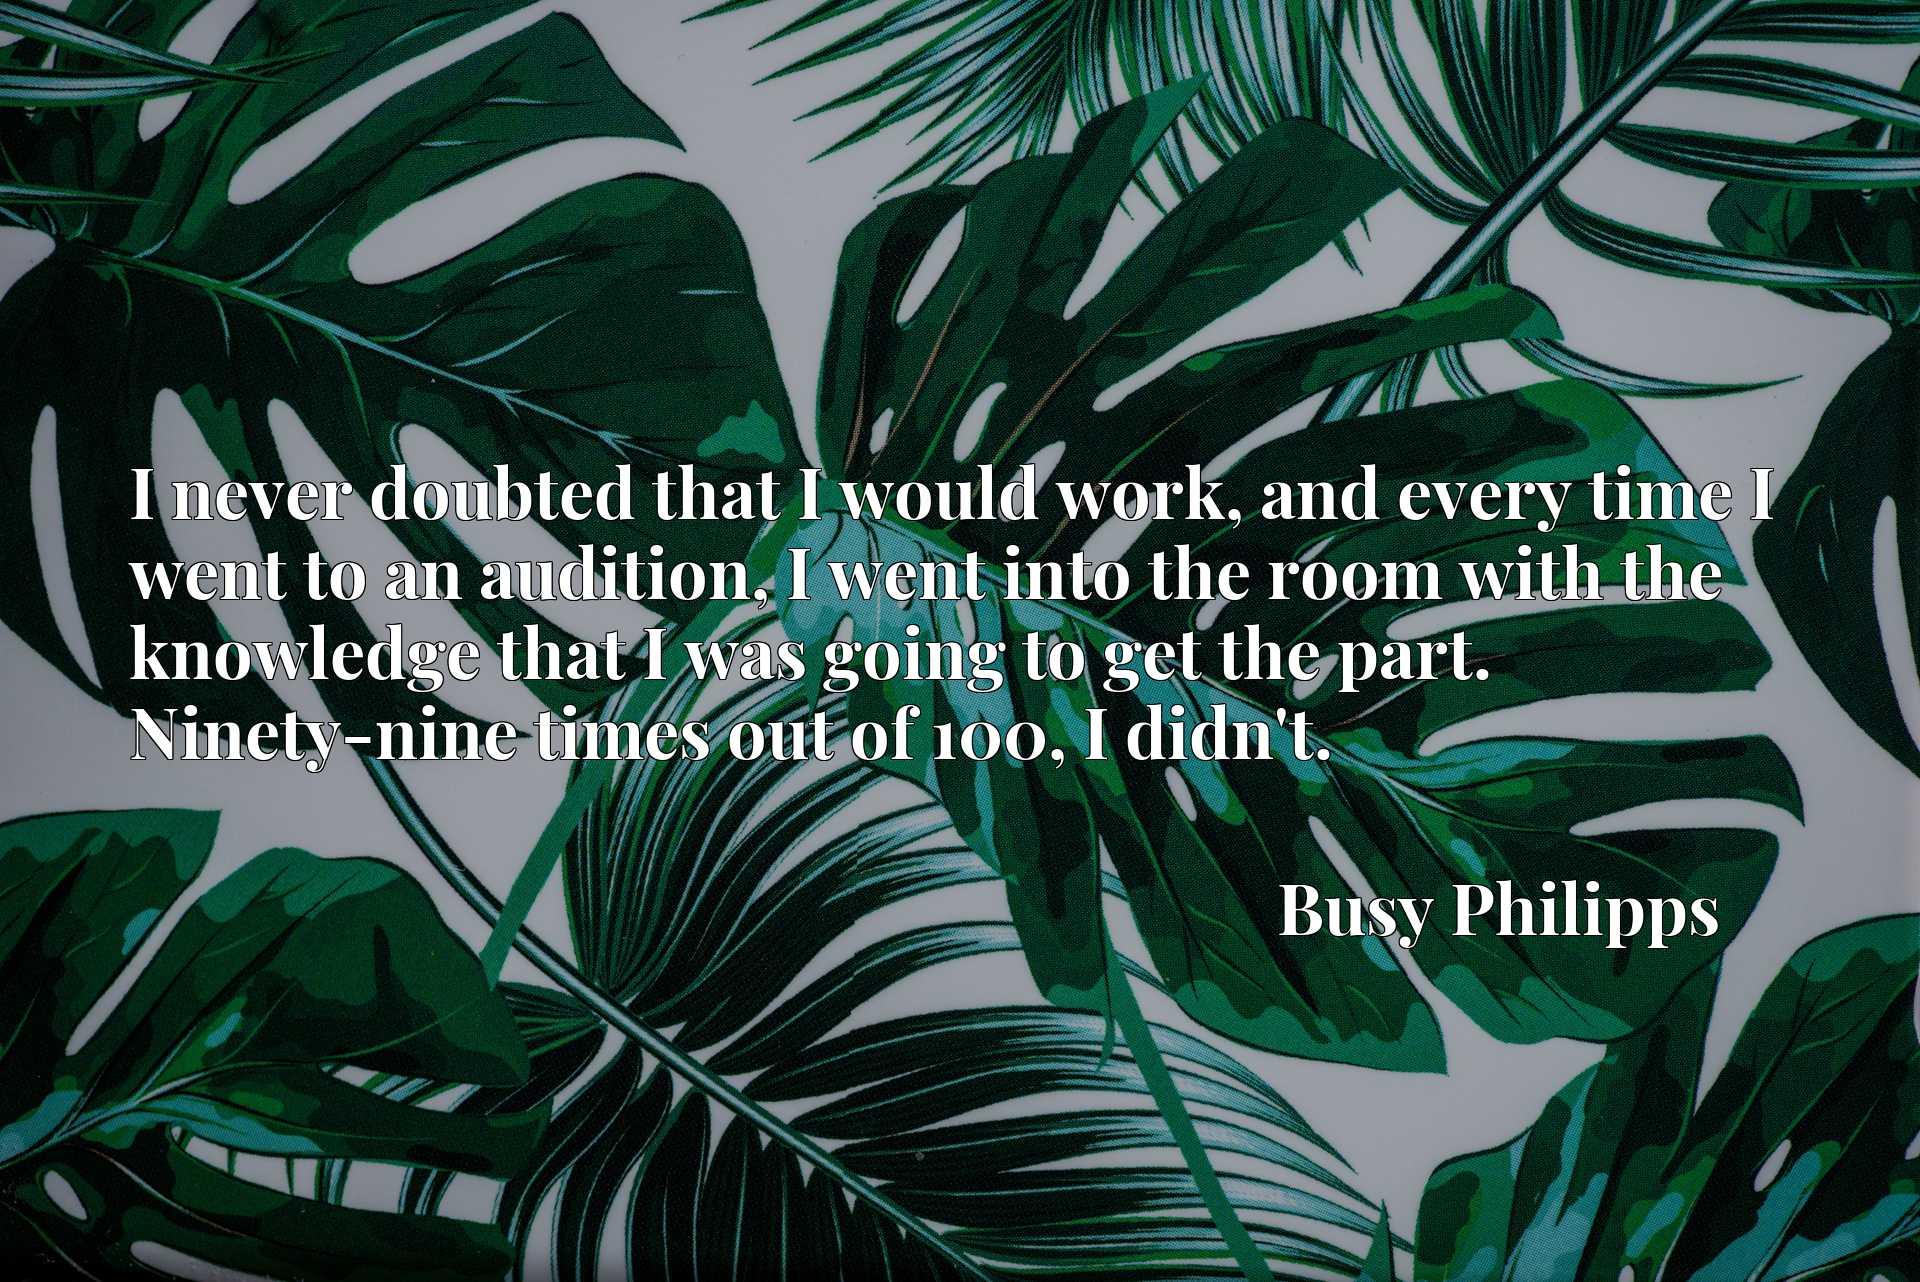 Quote Picture :I never doubted that I would work, and every time I went to an audition, I went into the room with the knowledge that I was going to get the part. Ninety-nine times out of 100, I didn't.